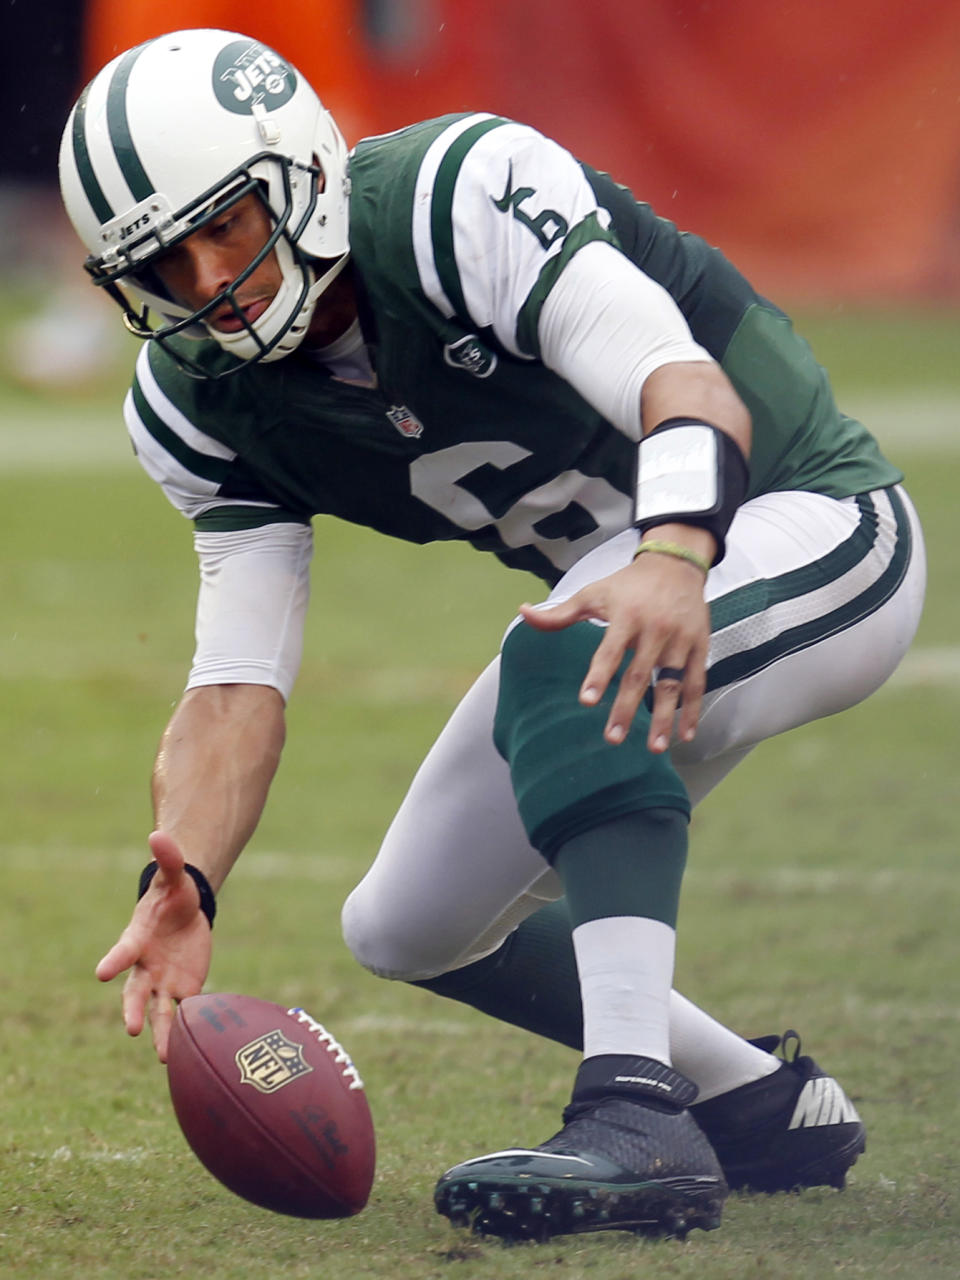 New York Jets quarterback Mark Sanchez fumbles the ball and then recovers it during overtime of an NFL football game against the Miami Dolphins, Sunday, Sept. 23, 2012, in Miami. The Jets won 23-20 in overtime. (AP Photo/Wilfredo Lee)